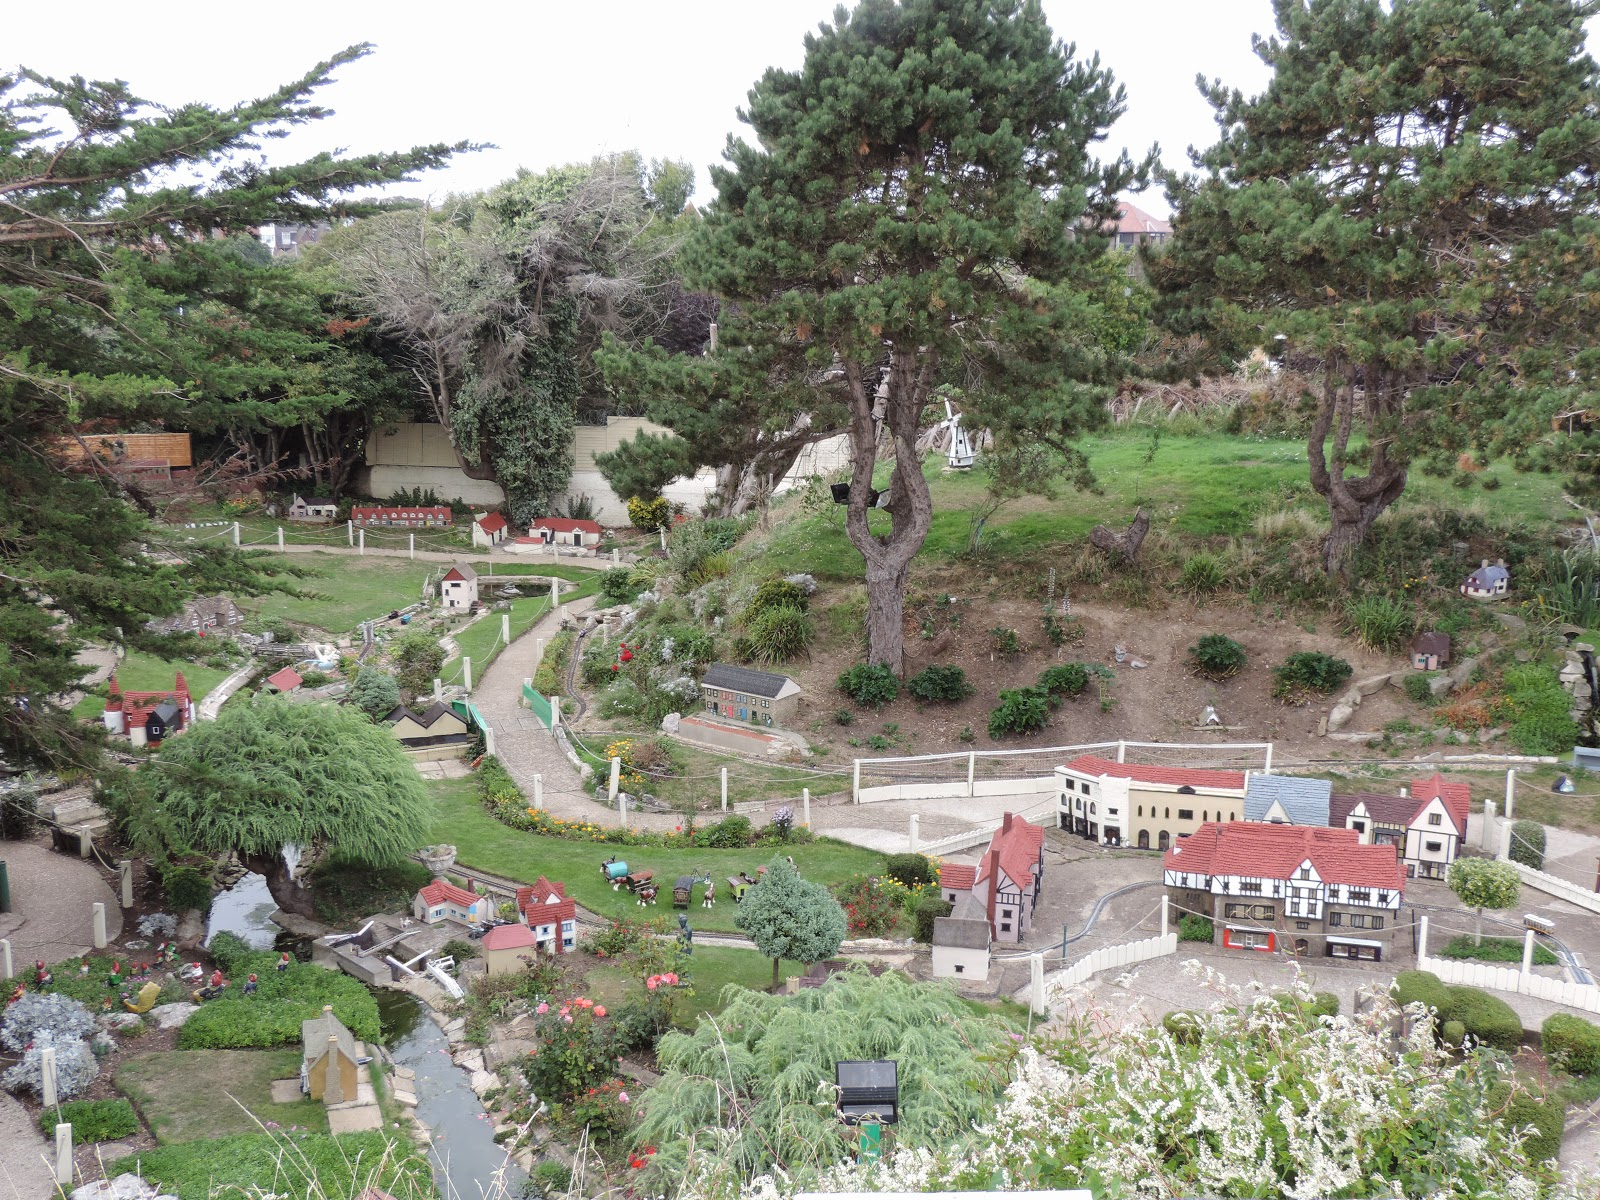 model village with waterways and model trains